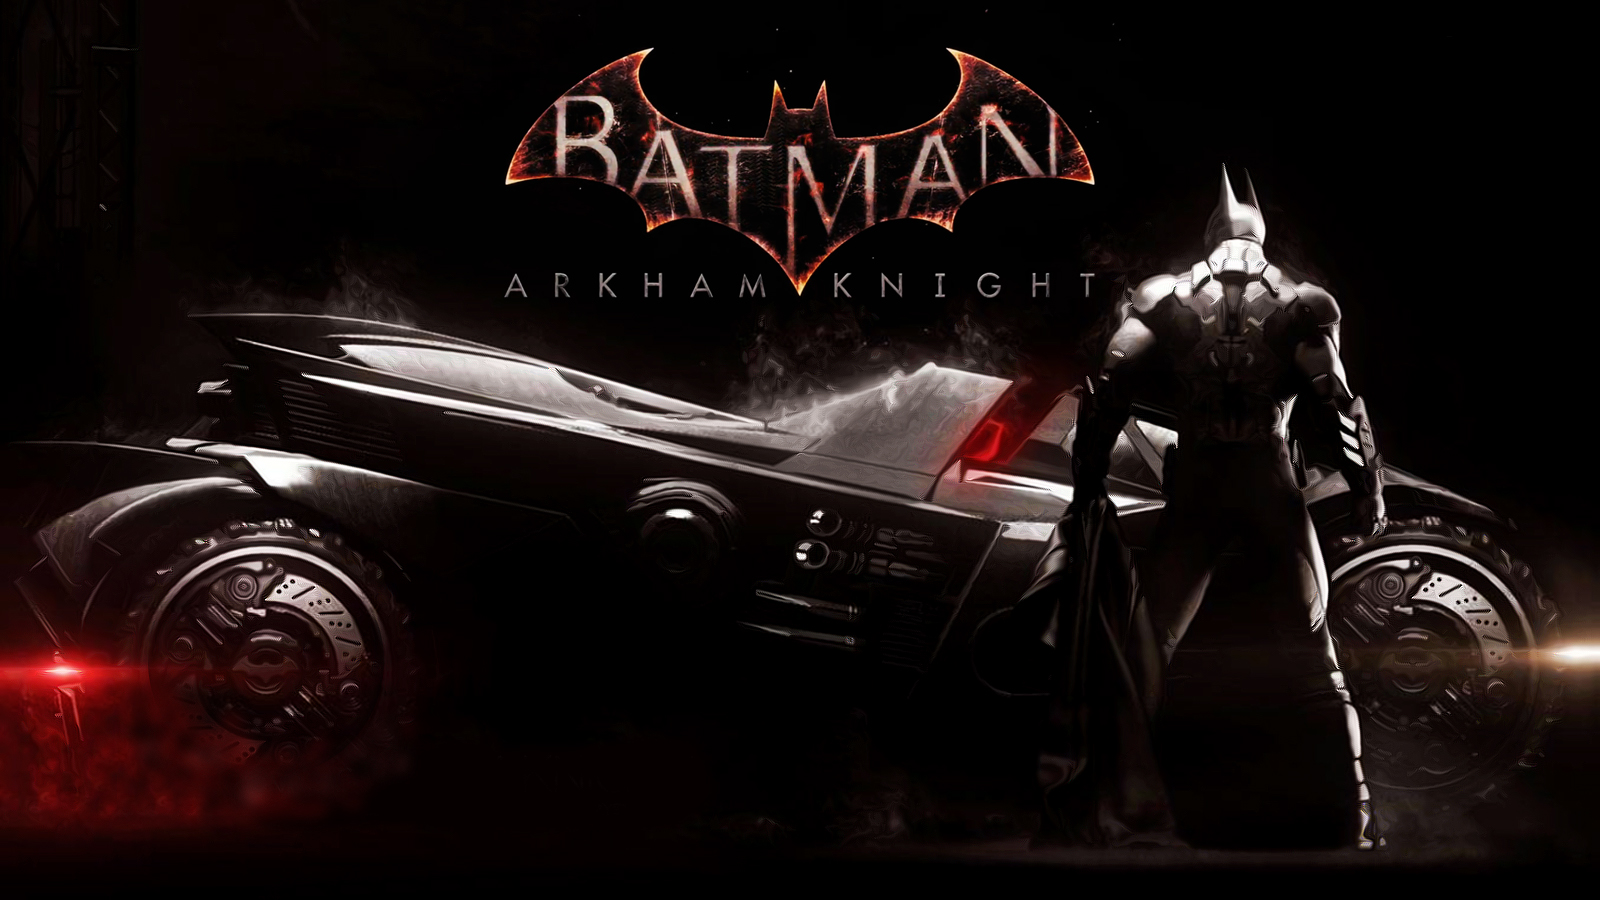 Arkham Knight Wallpaper by heyPierce